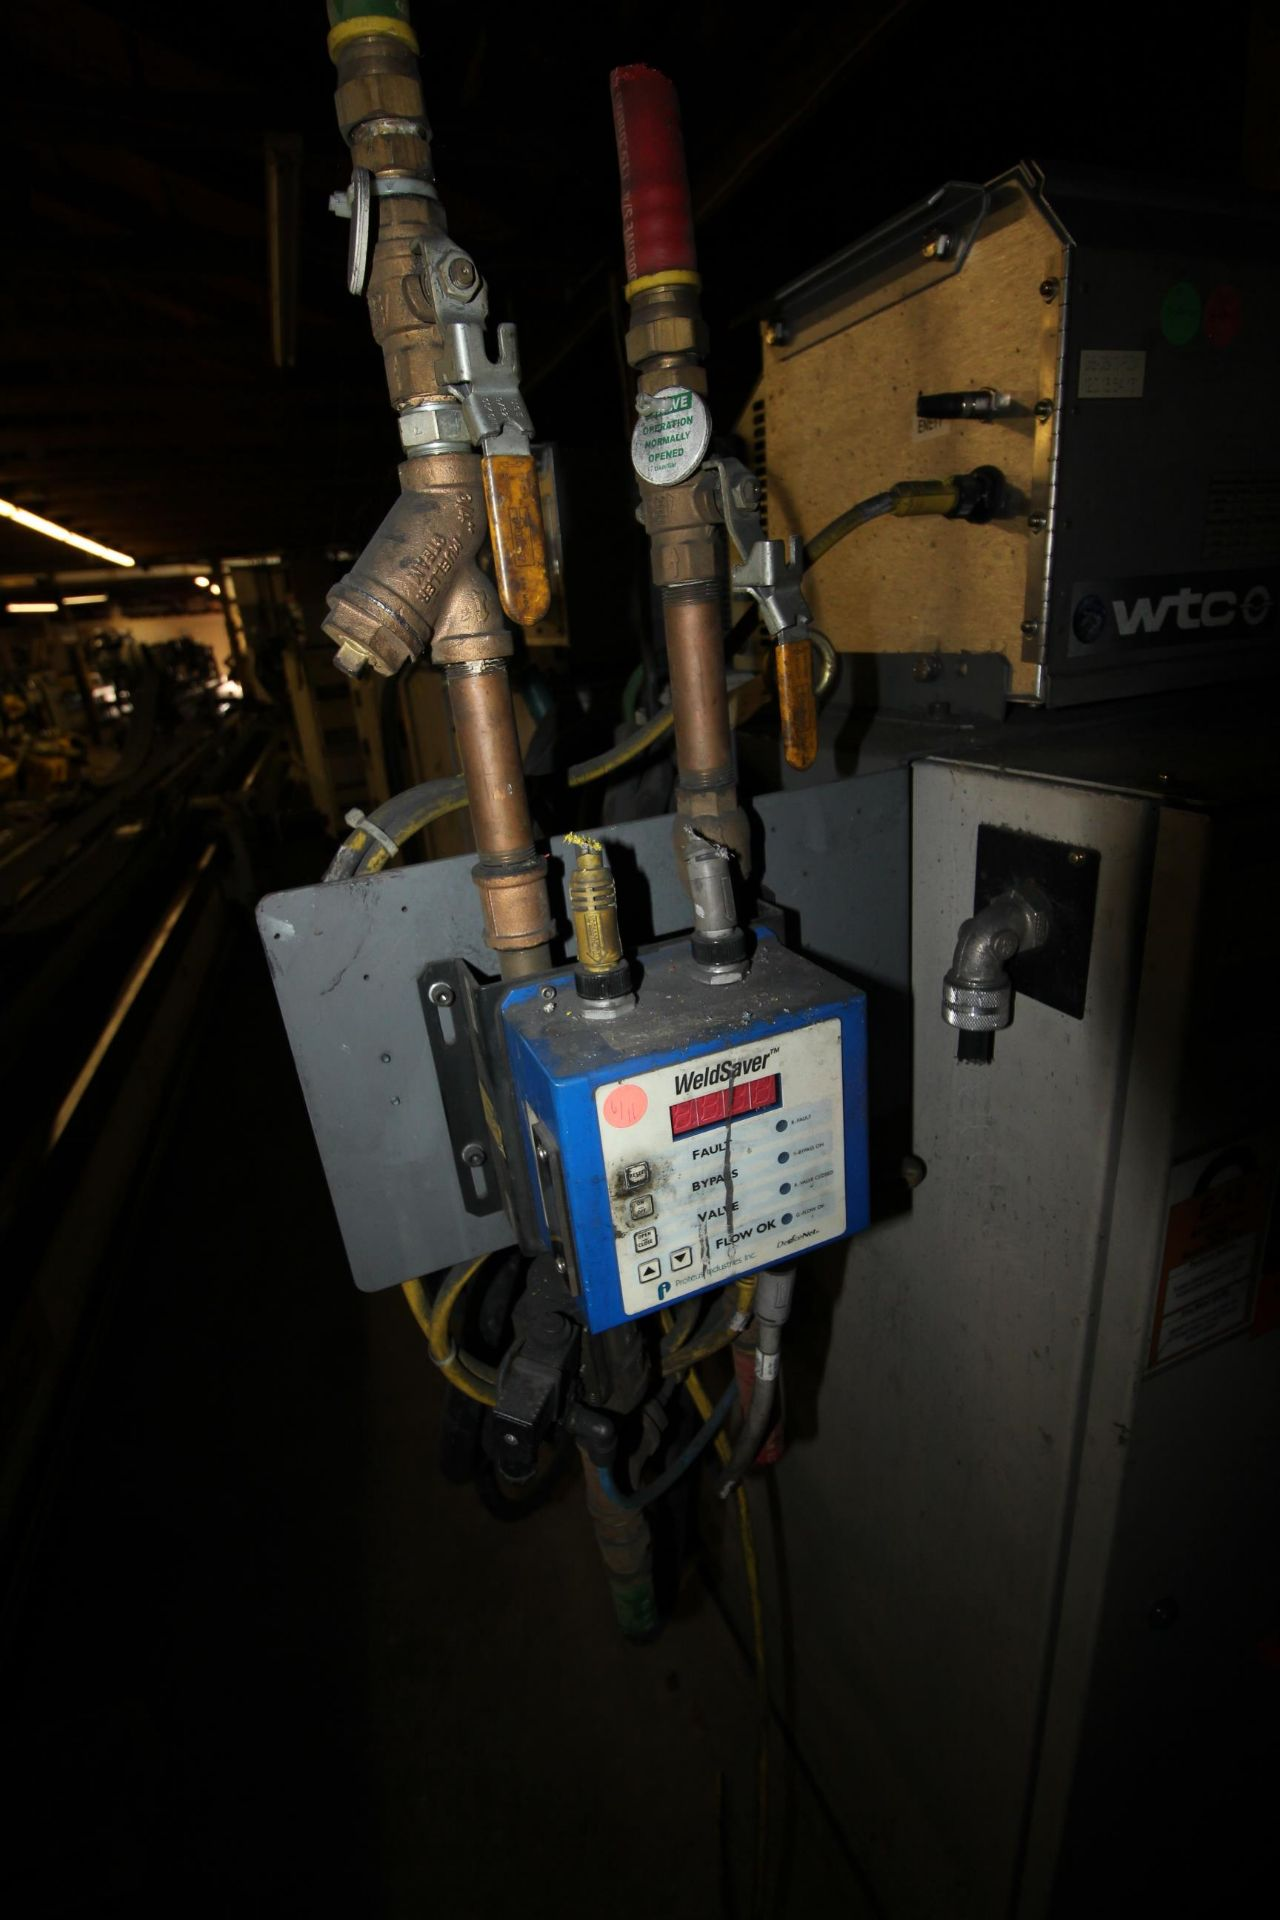 MOTOMAN ROBOT ES200N, NX100 CONTROL, SN S5M259-1-4, YEAR 12/05, CABLES AND TEACH PENDANT - Image 11 of 11